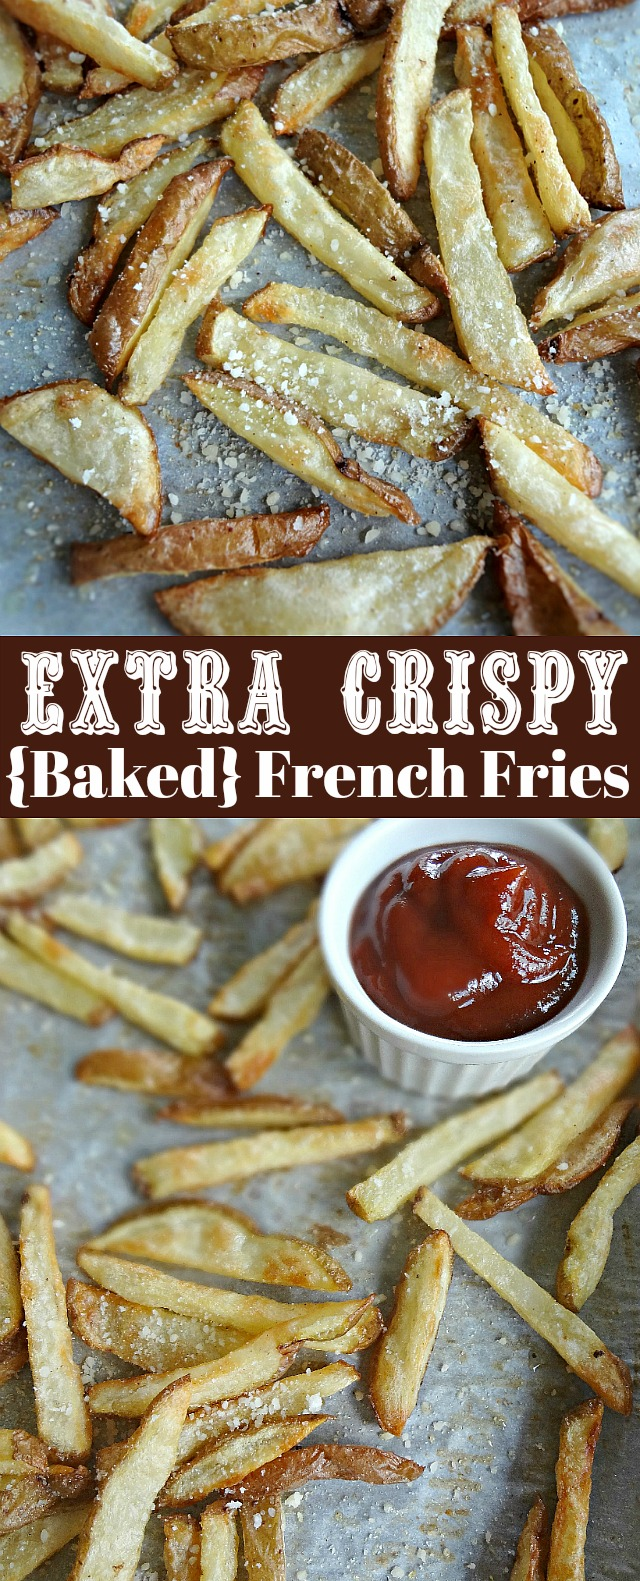 Extra Crispy Baked French Fries